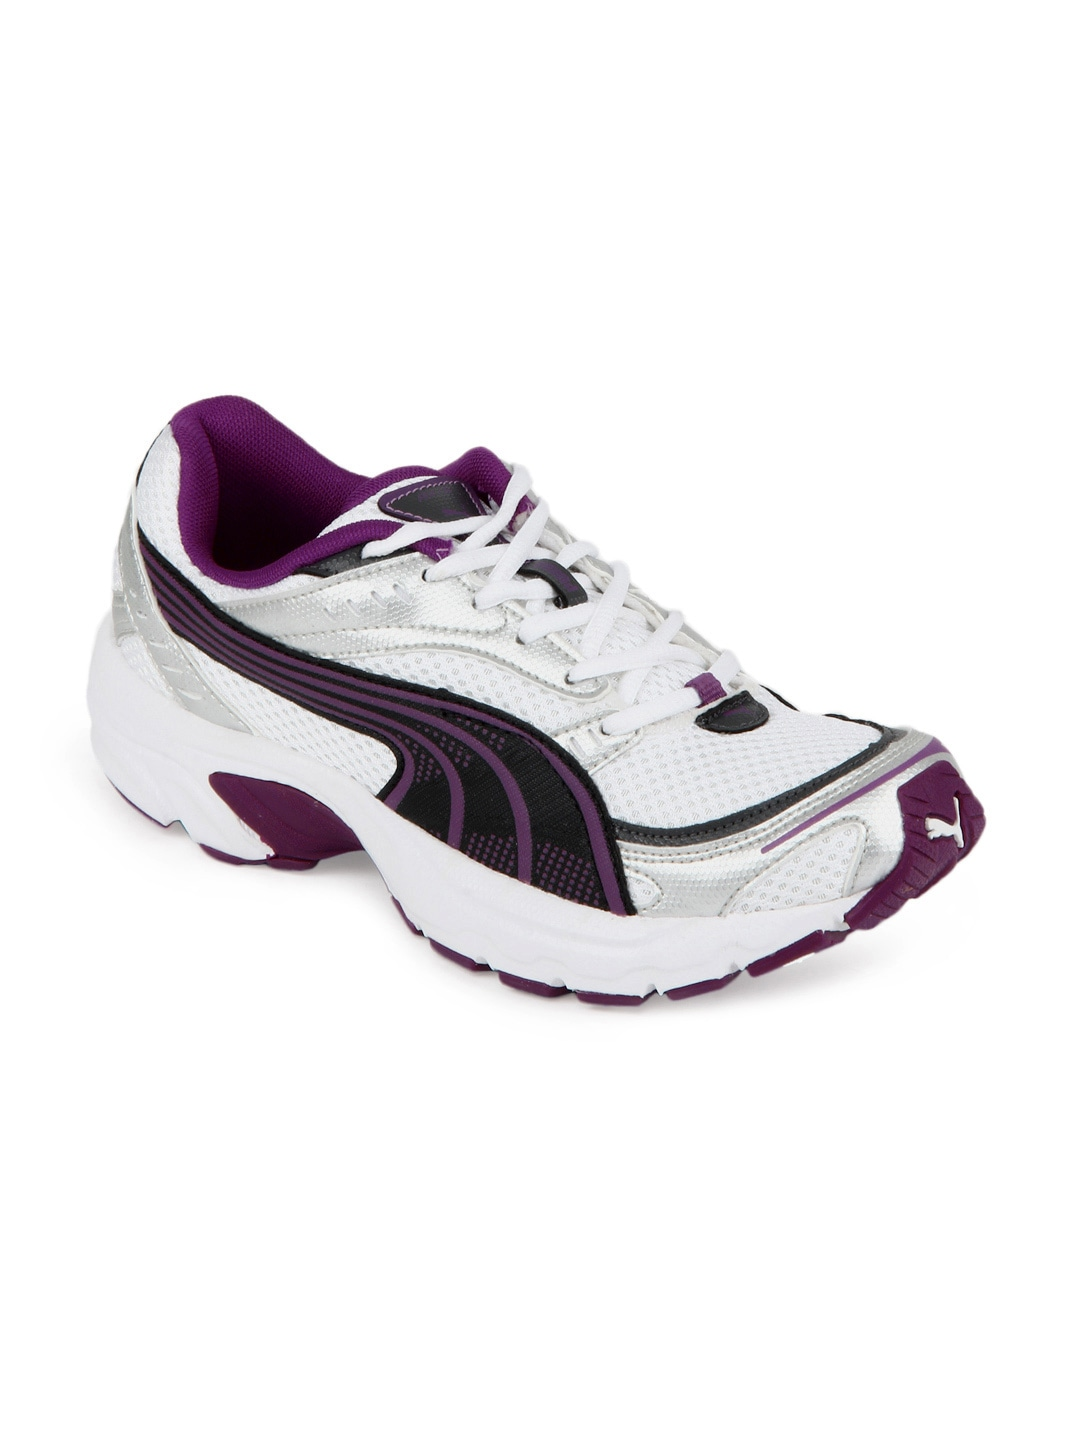 Cheap shoes online for women free shipping Cheap shoes online